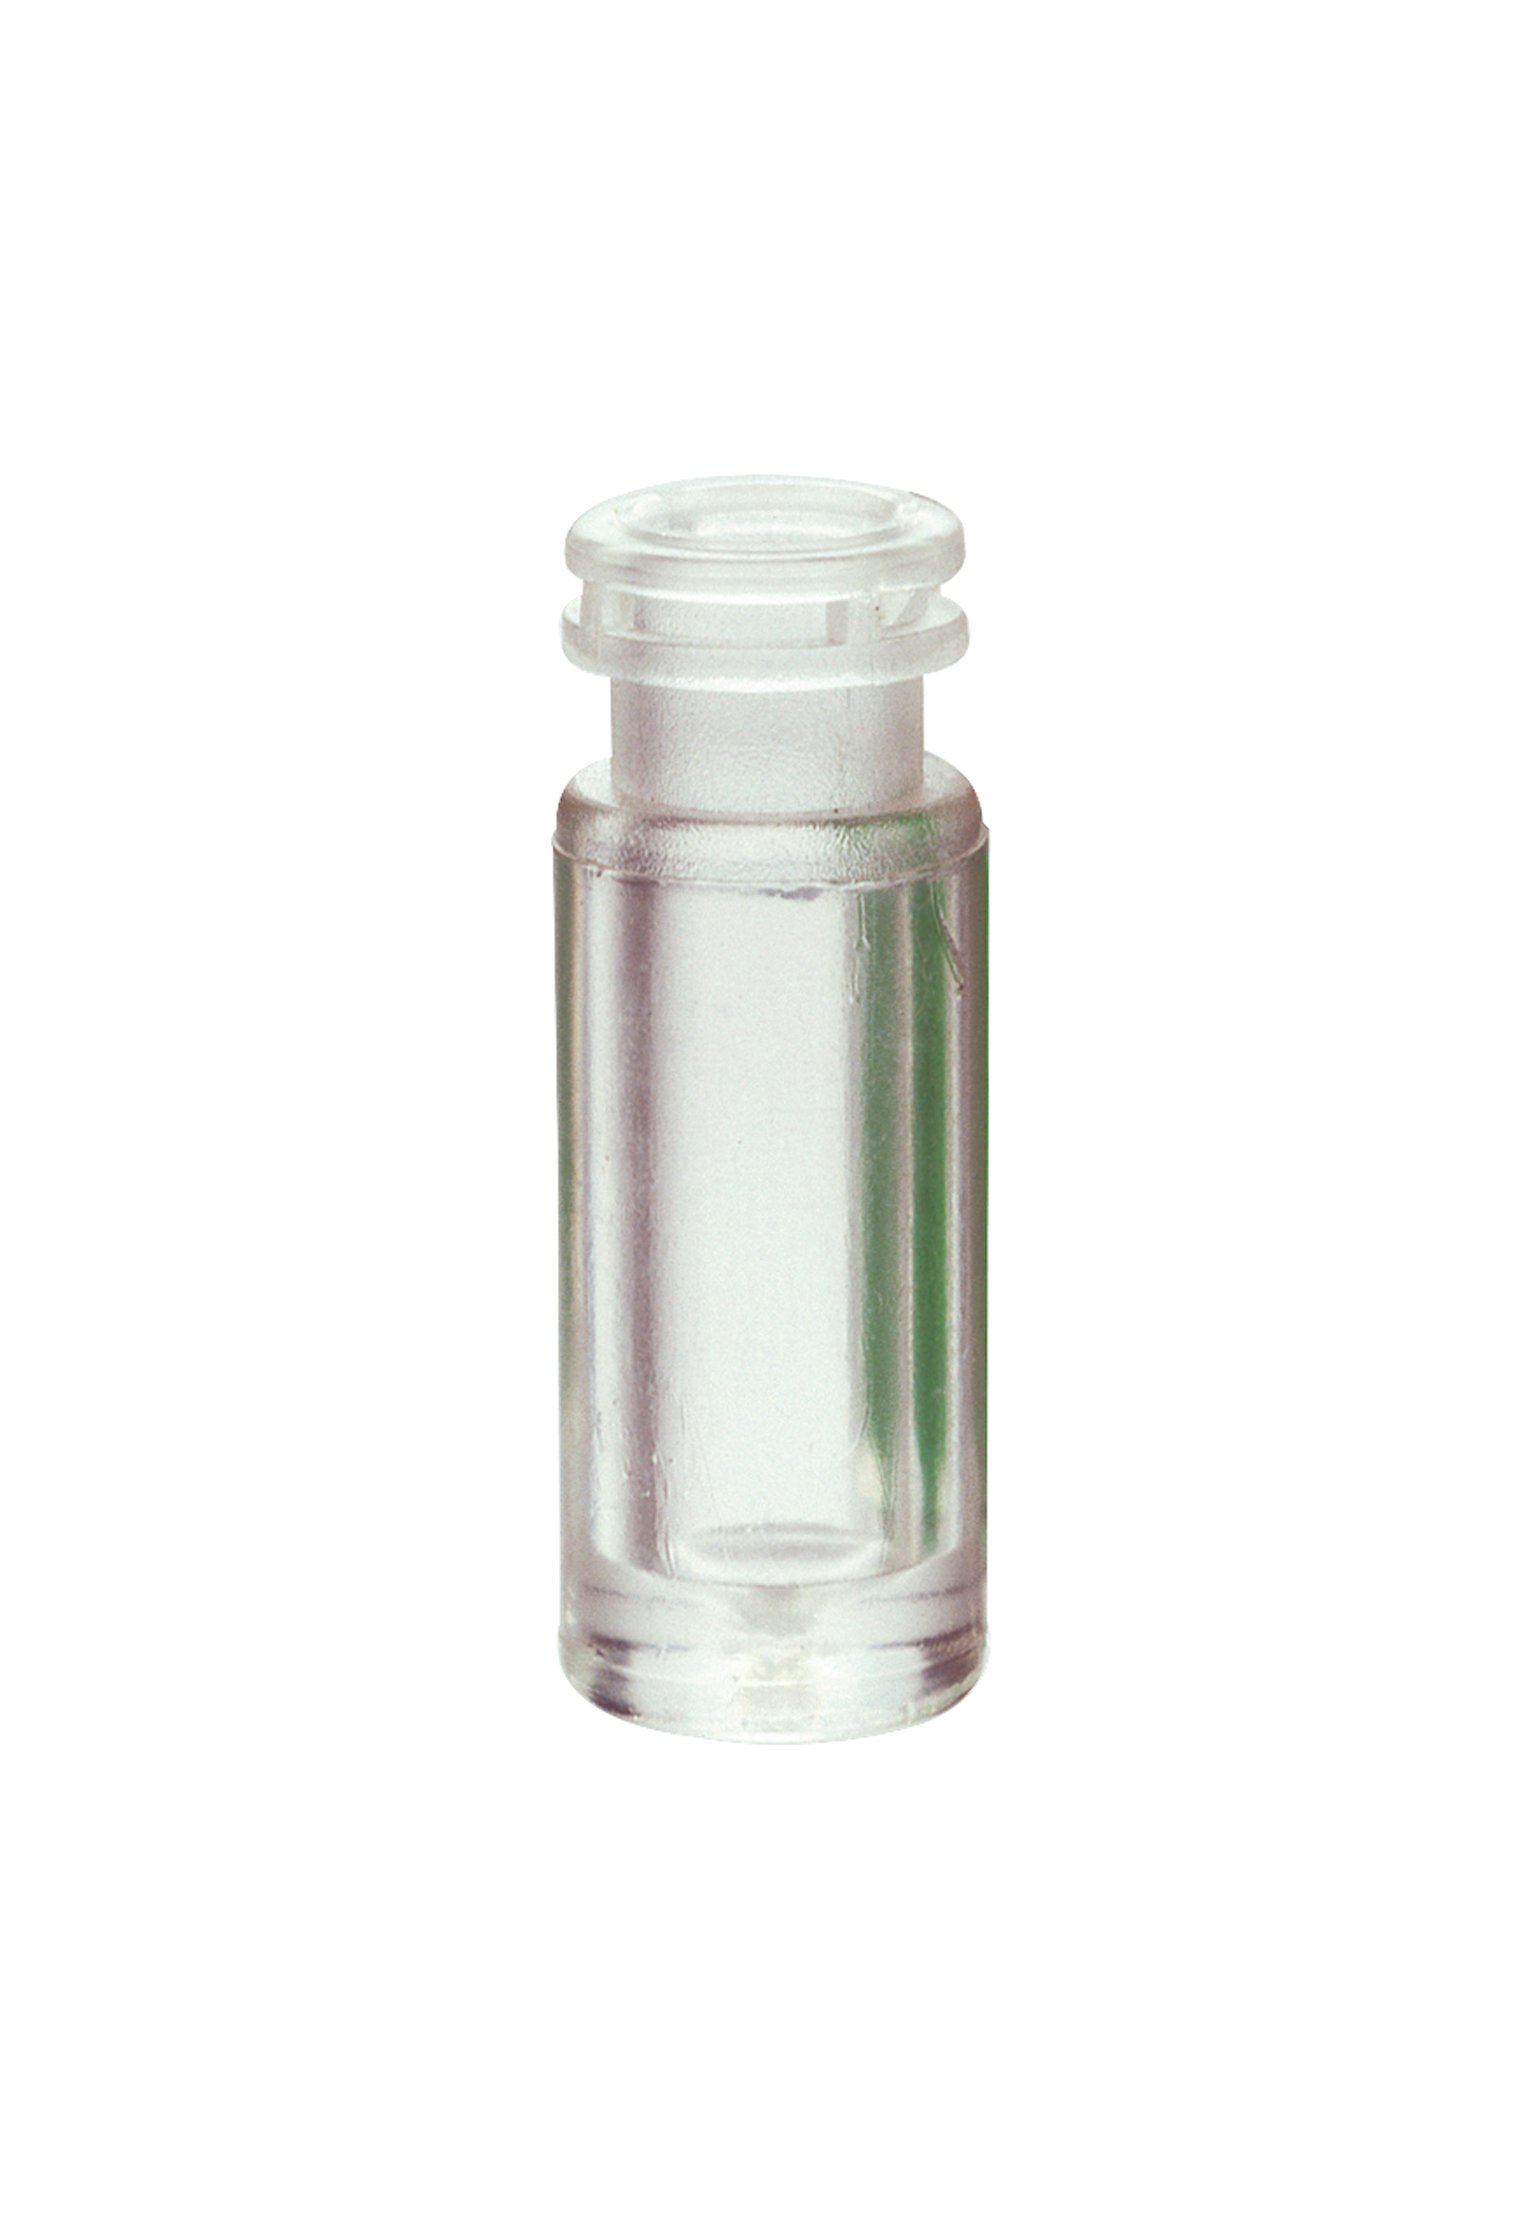 National Scientific Clear Glass Top Vial, Flat Base, 11mm Crimp Top, 12mm Diameter x 32mm Height (Case of 100)